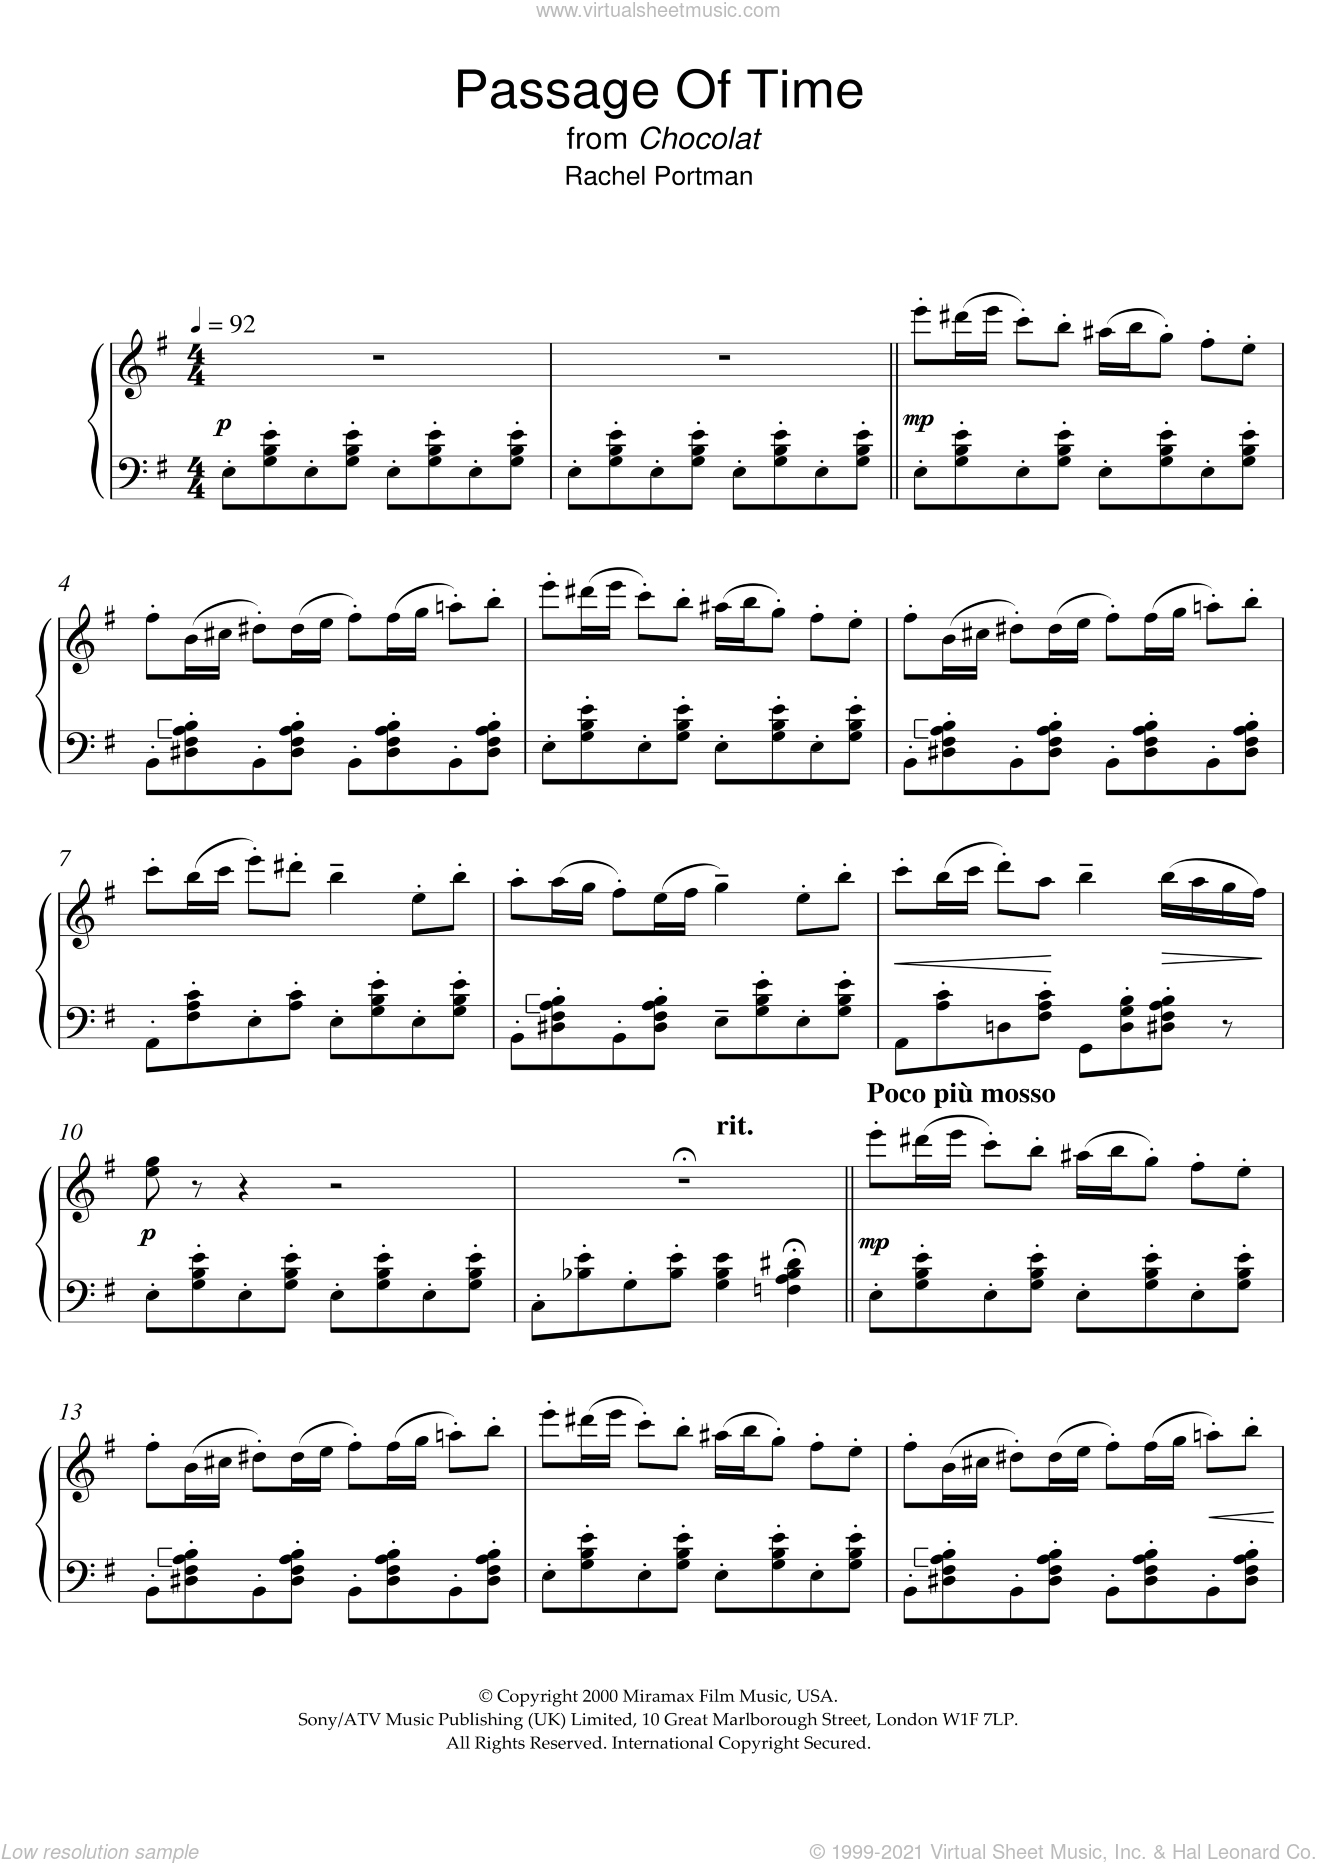 Passage Of Time sheet music for piano solo by Chocolat